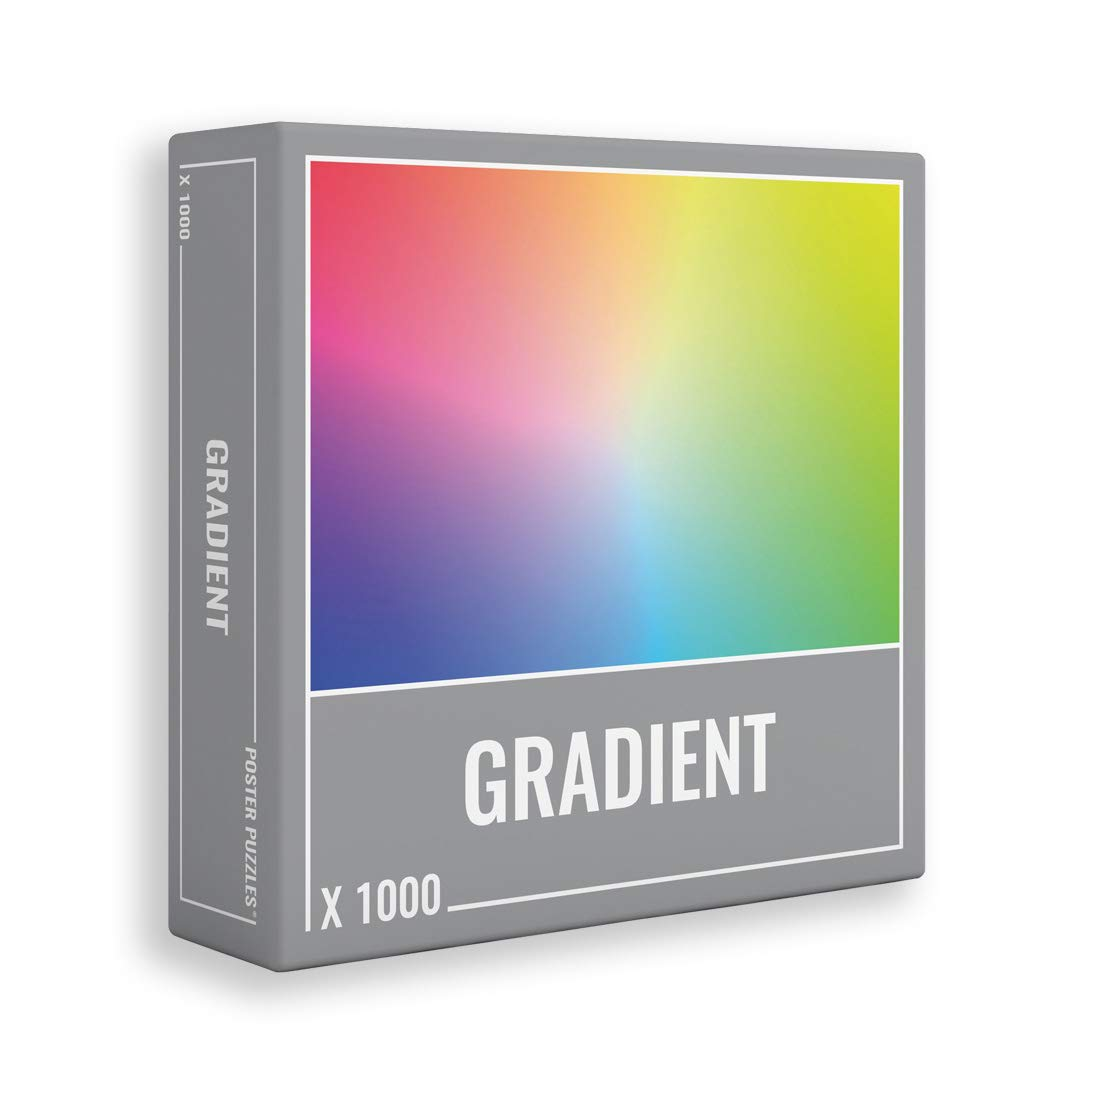 Gradient Puzzle 1000 Pieces: Cool, Premium Jigsaw Puzzle for Grown Ups and Adults!